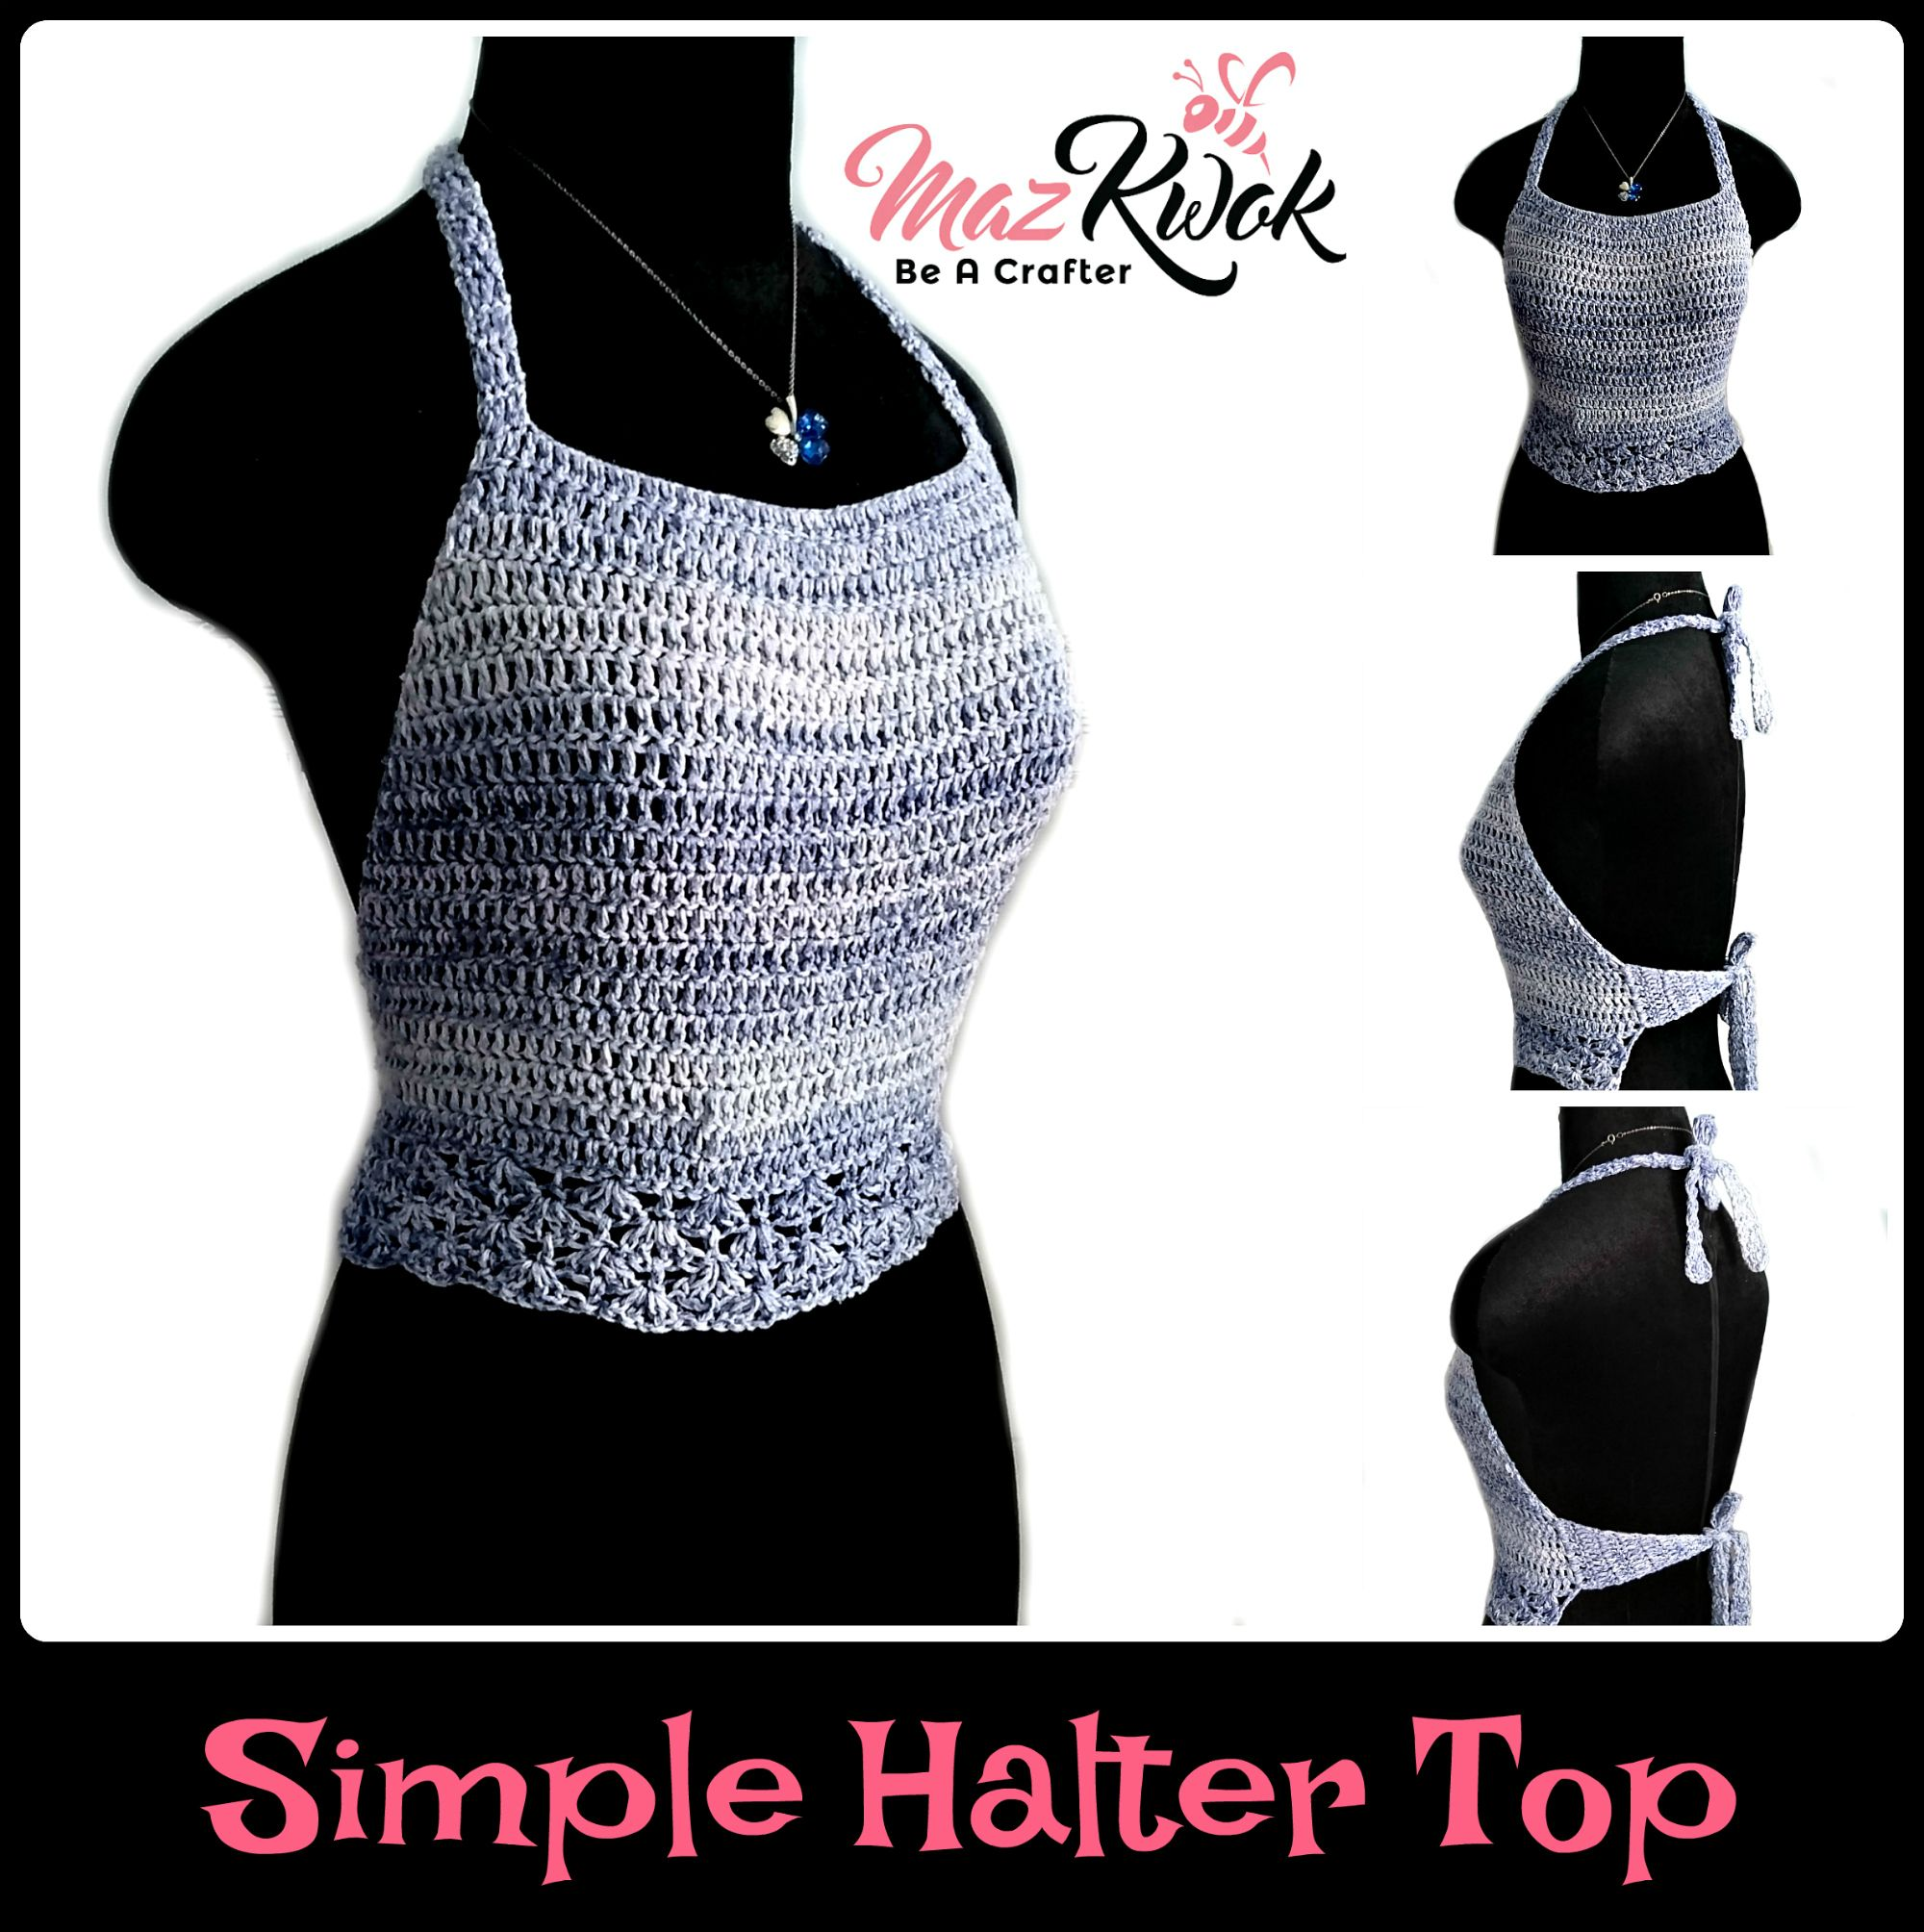 Simple Halter Top - free crochet pattern by Maz Kwok | Patterns ...